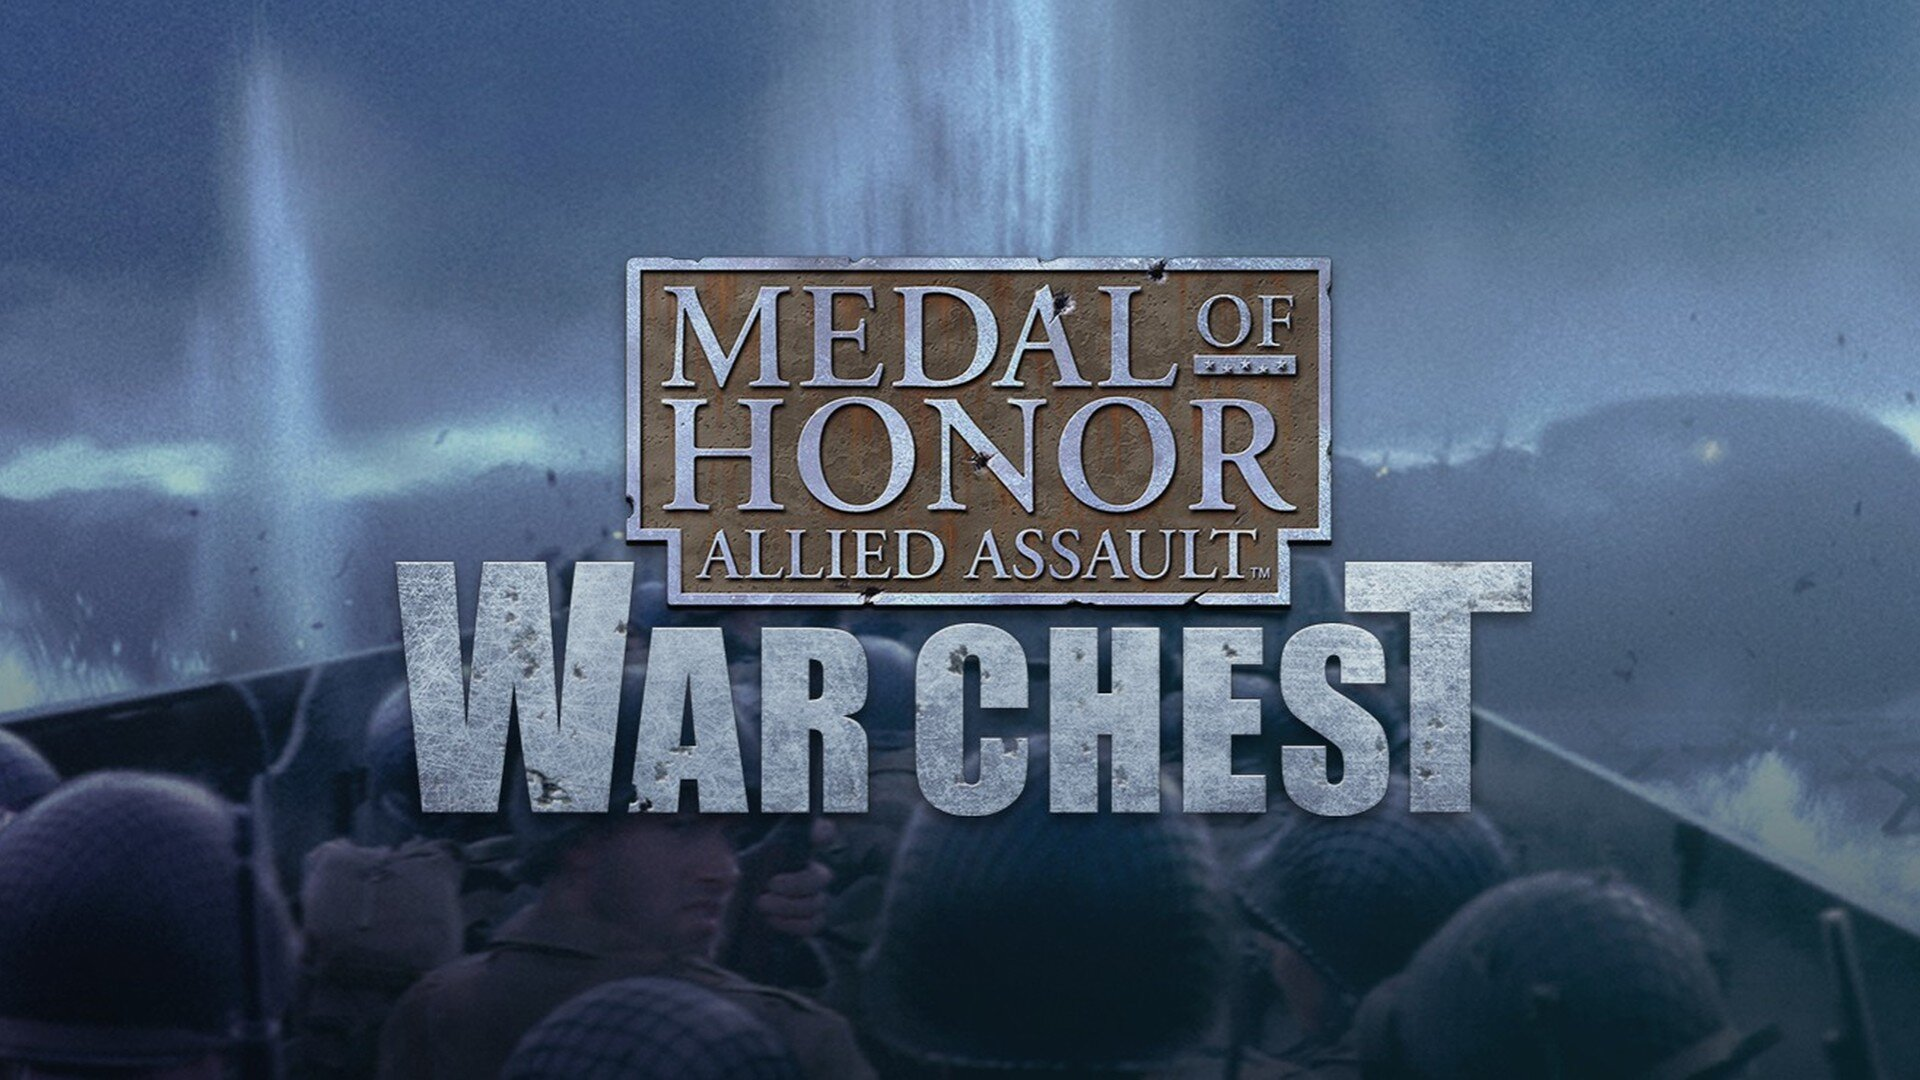 """Medal of Honor"" (2002)"